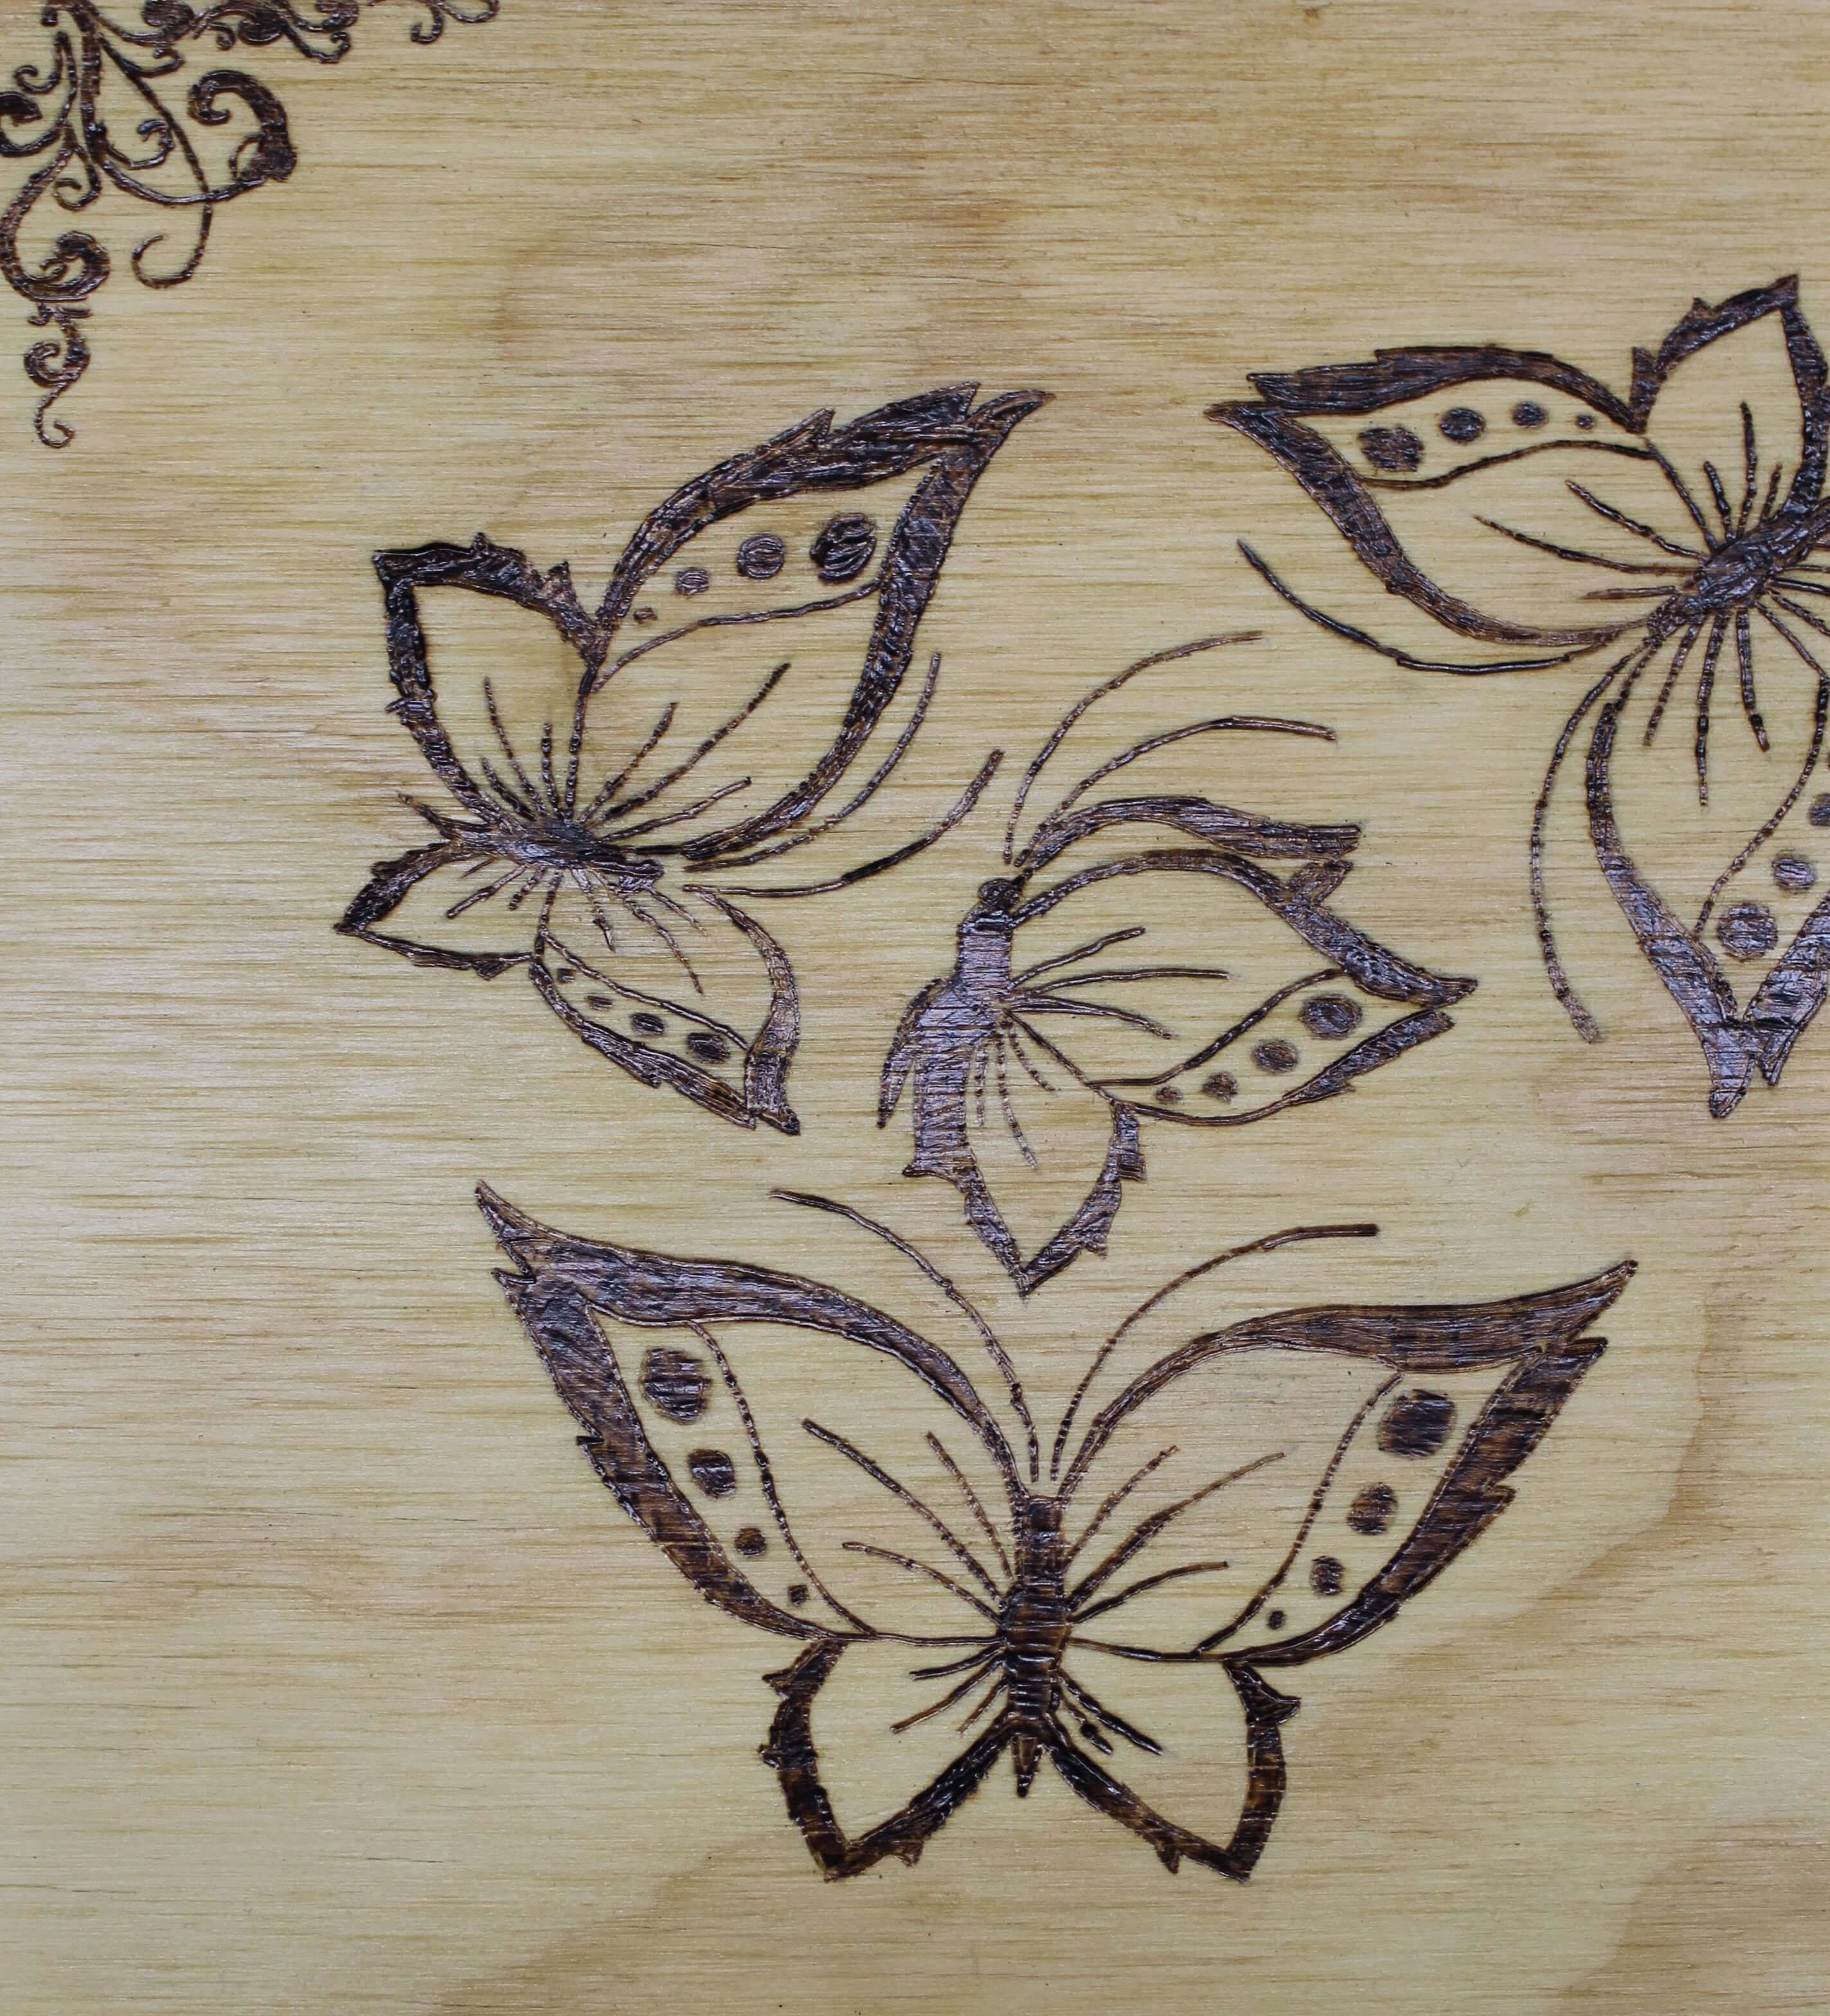 20 Free Printable Wood Burning Patterns For Beginners | Woodburning - Free Printable Wood Burning Patterns For Beginners